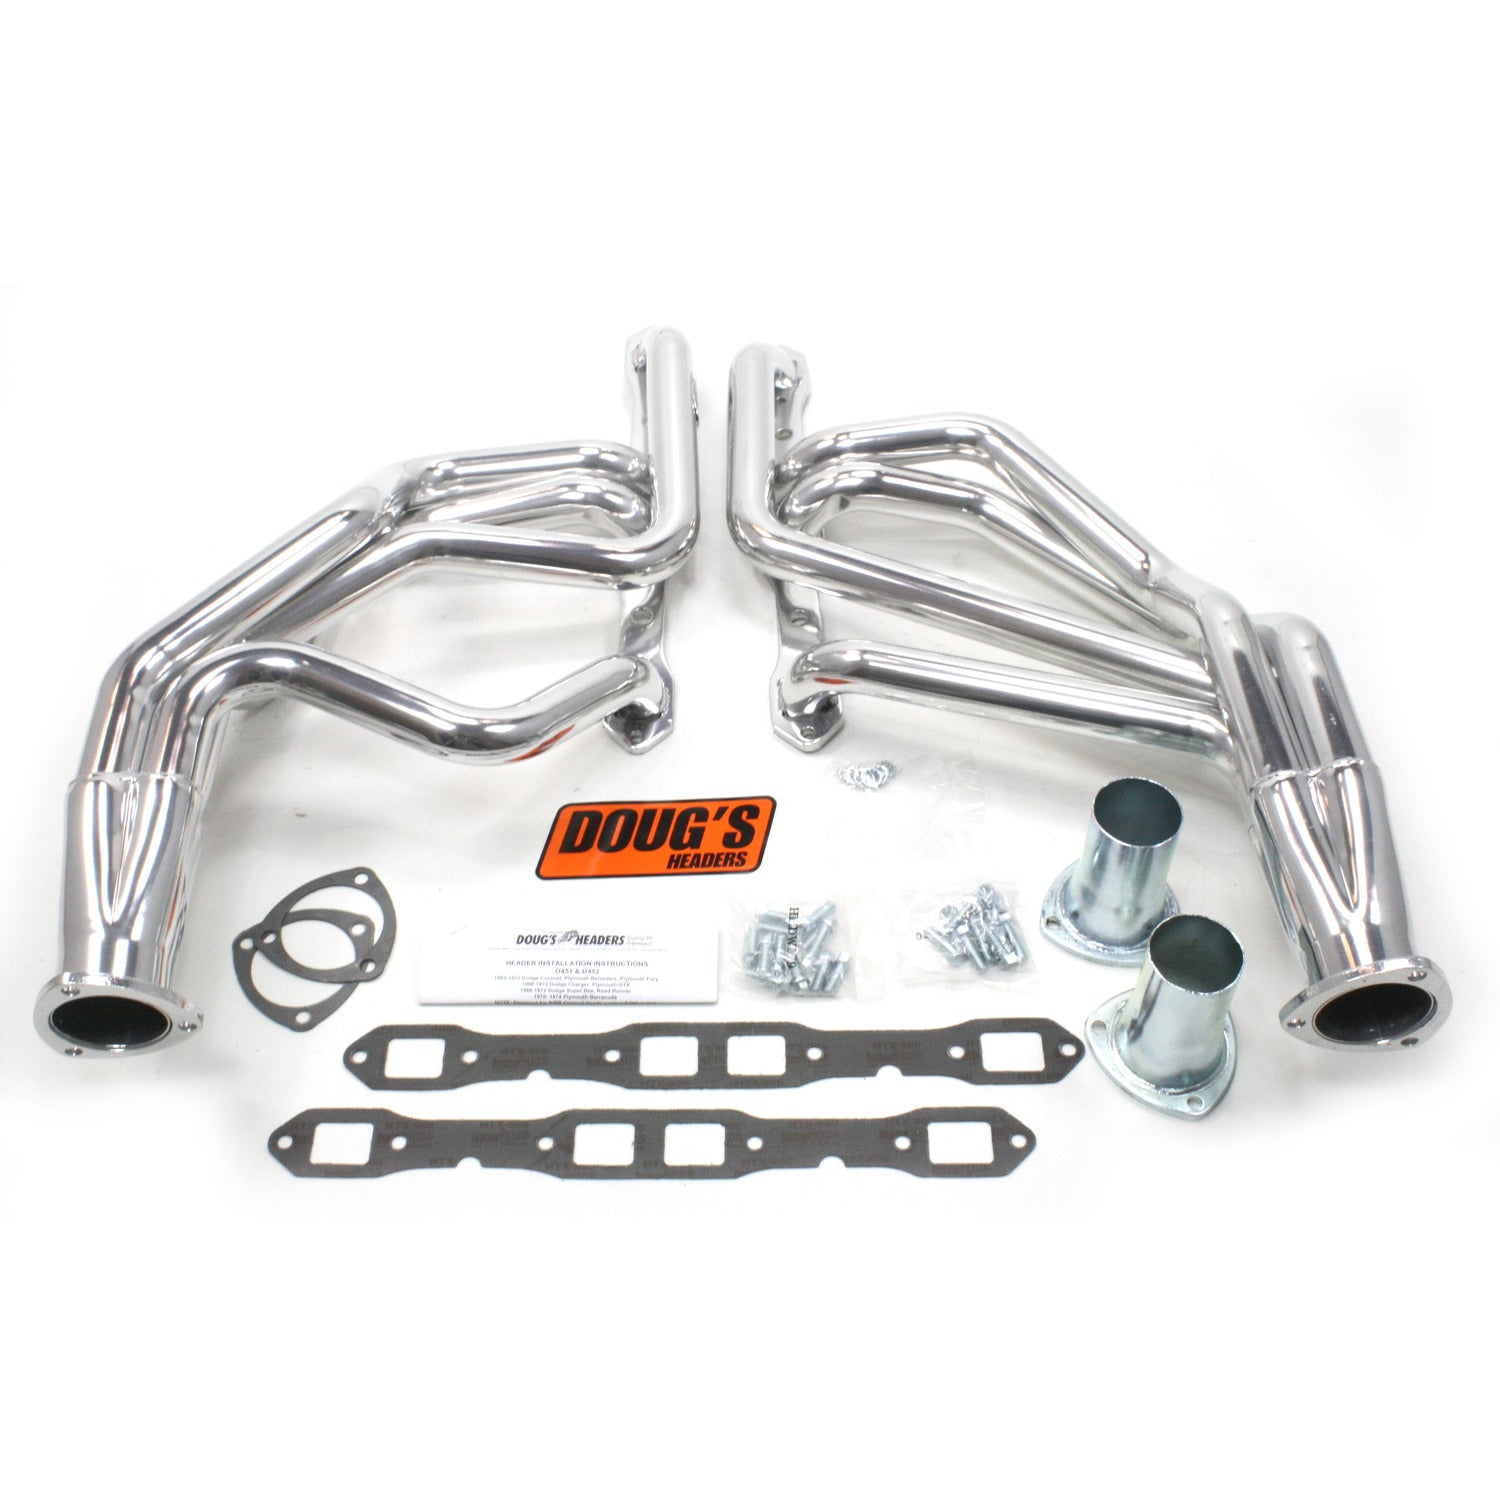 "Doug's Headers D451 1 3/4"" 4-Tube Full Length Header Mopar B Body Big Block Mopar 62-72 Metallic Ceramic Coating"